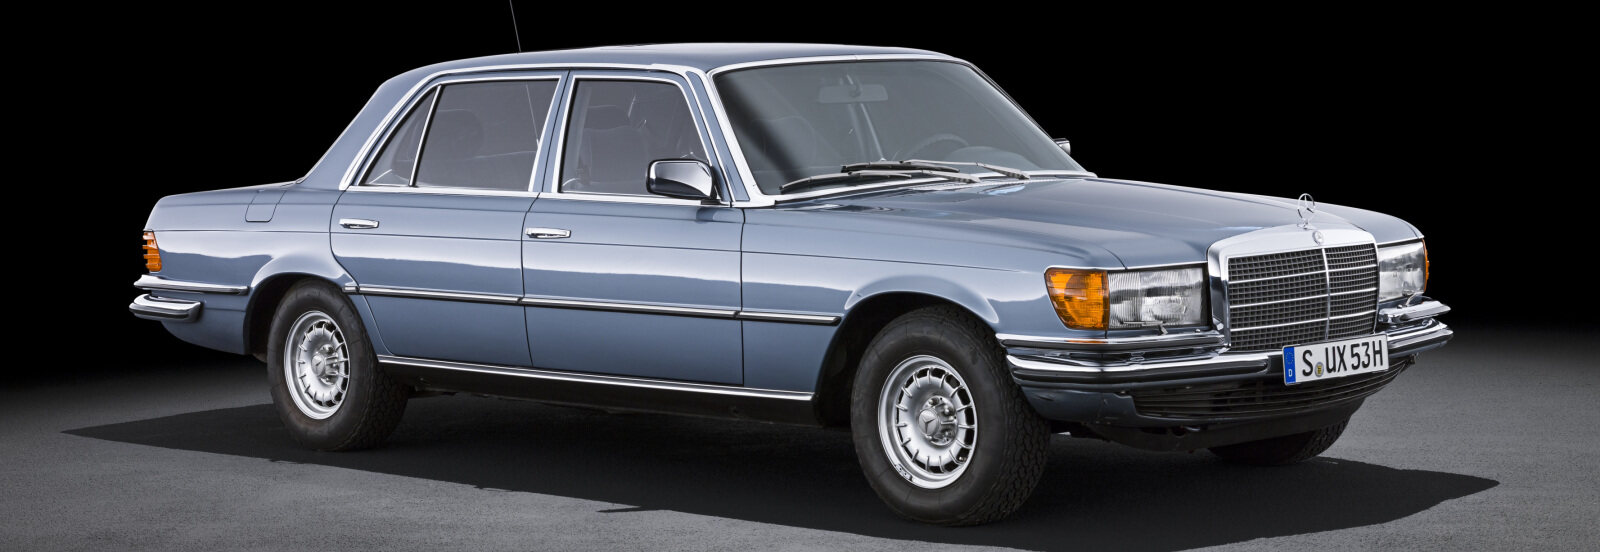 PKW4000000000 Mercedes-Benz, since 1946